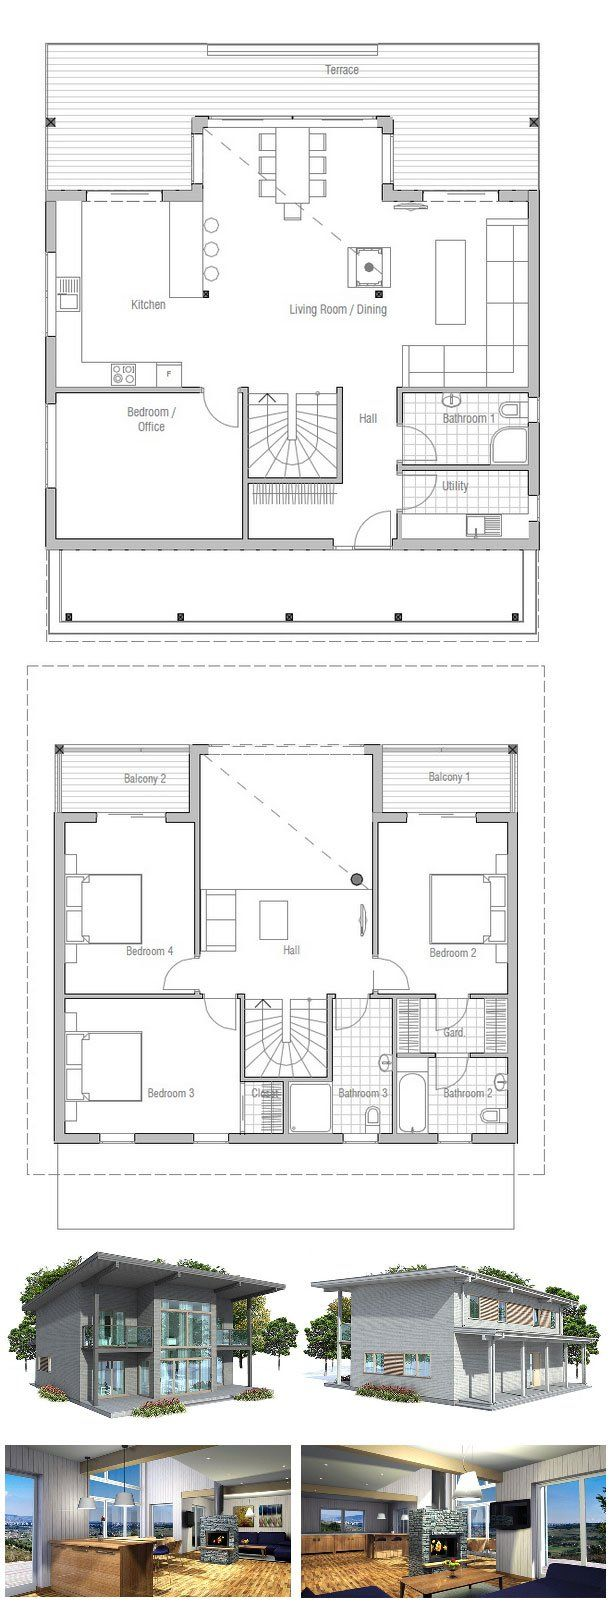 House plans second floor balcony house plans for Terrace design 2nd floor